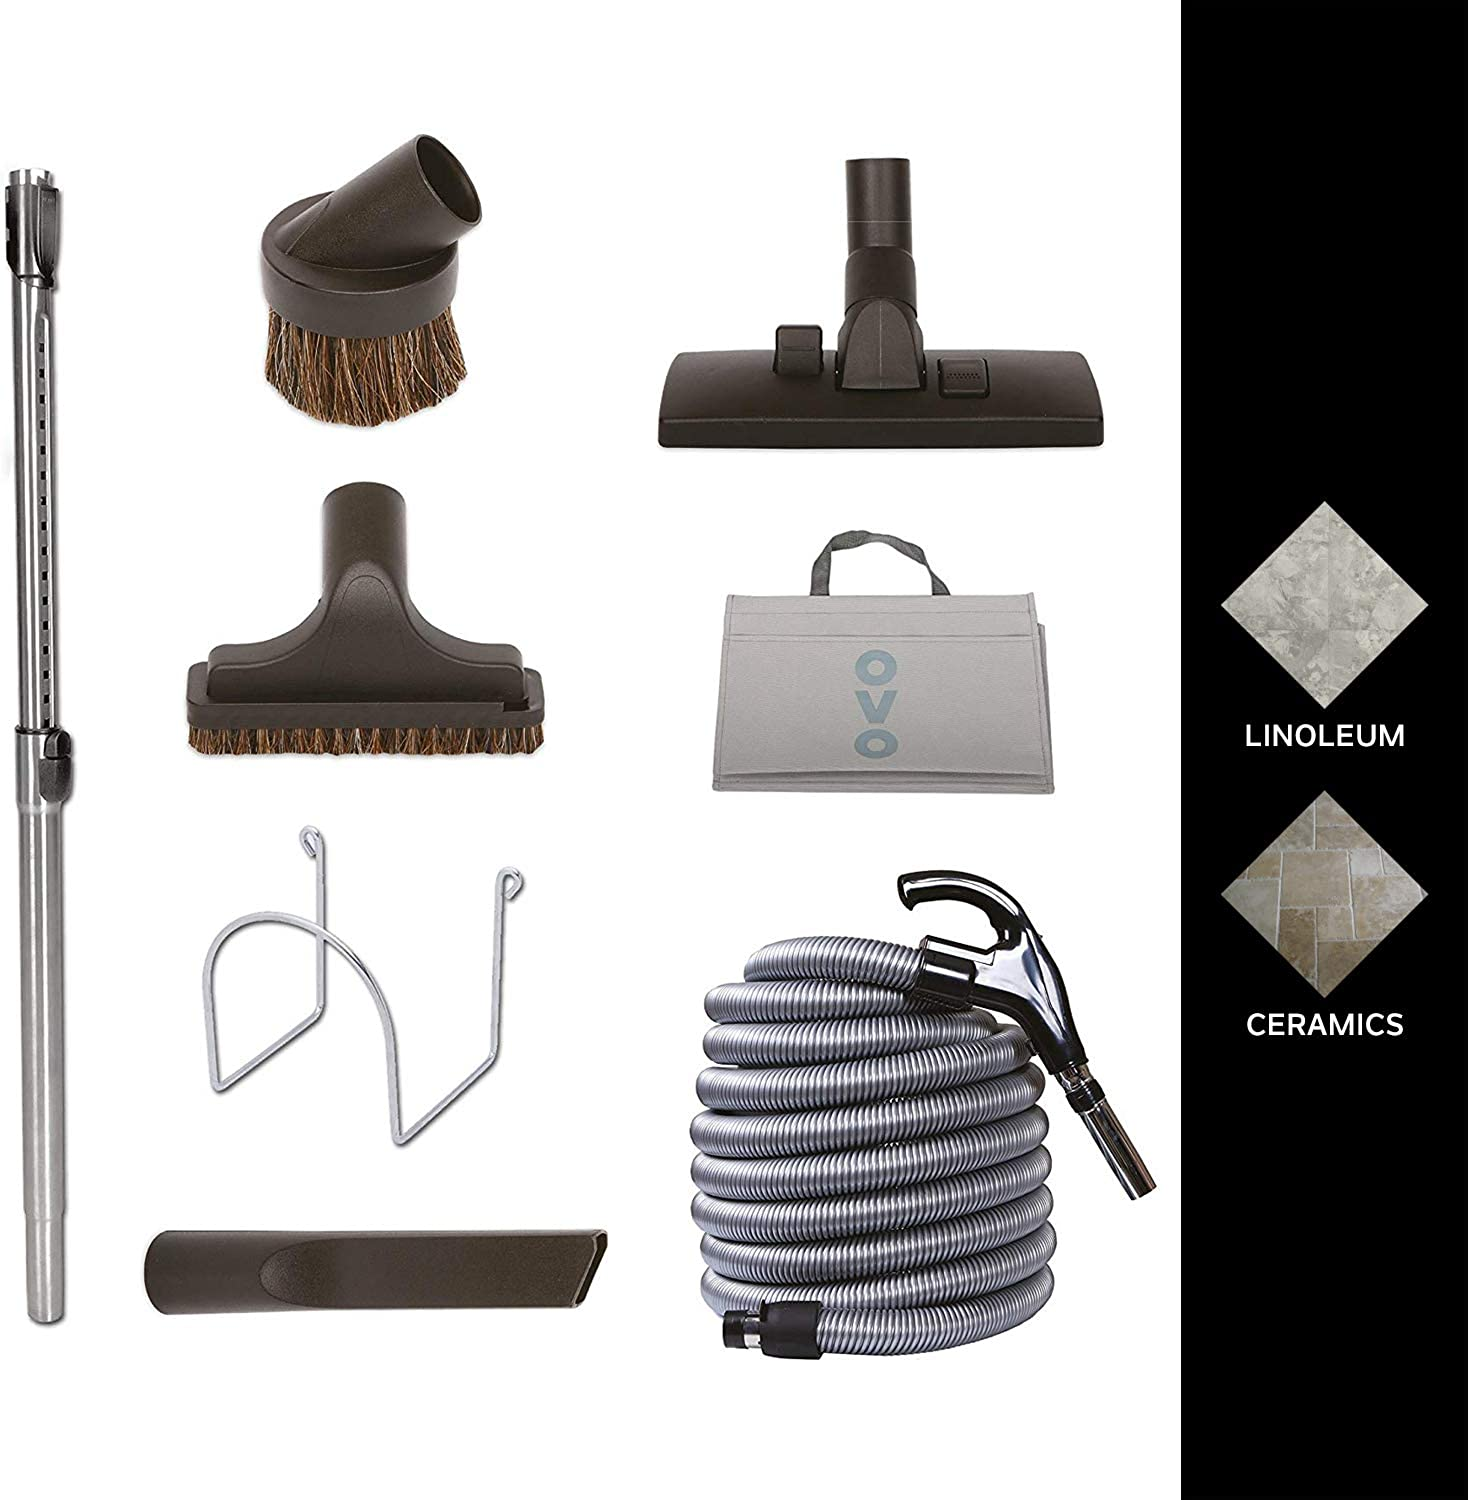 Nadair KIT-30G-OVO Garage Vacuum Accessories Kit - Set Includes 30ft Central Vac Hose With Combo Brush & 3 Hose Attachments - Dusting Brush - Upholstery Brush - Crevisse Brush, Black & White